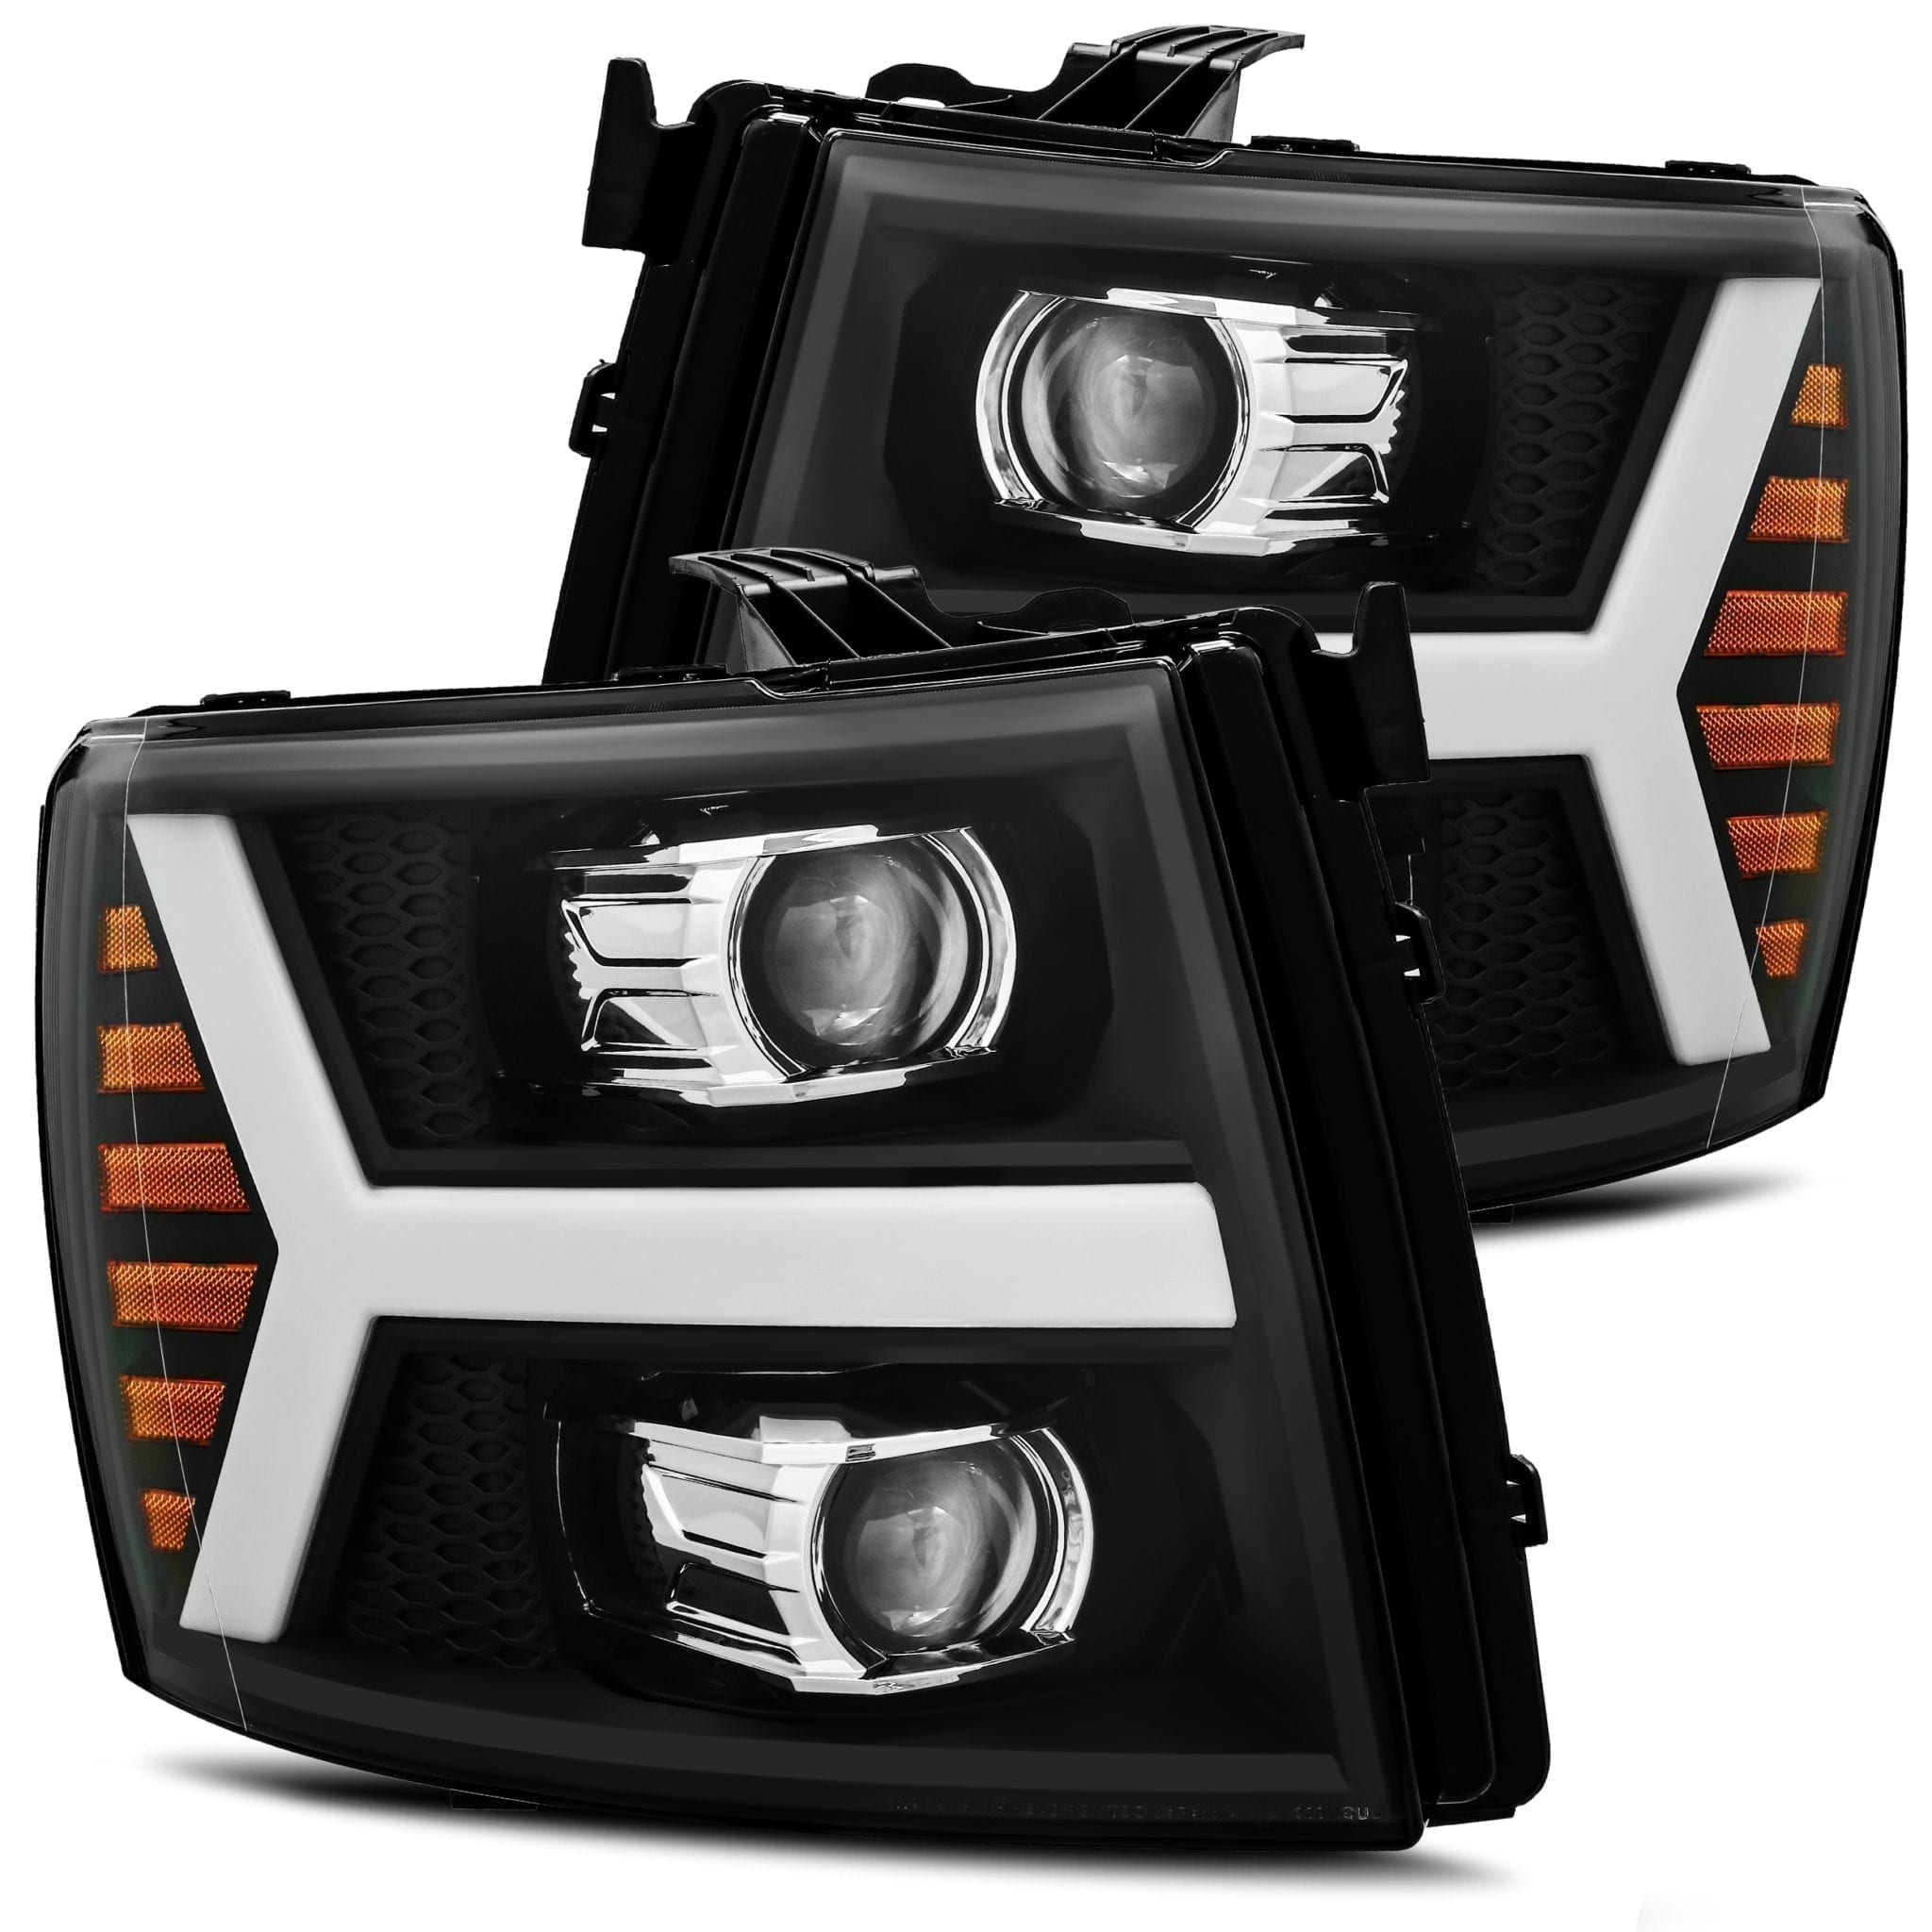 AlphaRex 2007 2008 2009 2010 2011 2012 2013 Chevrolet Silverado 1500/2500HD/3500HD PRO-Series Projector Headlights Black